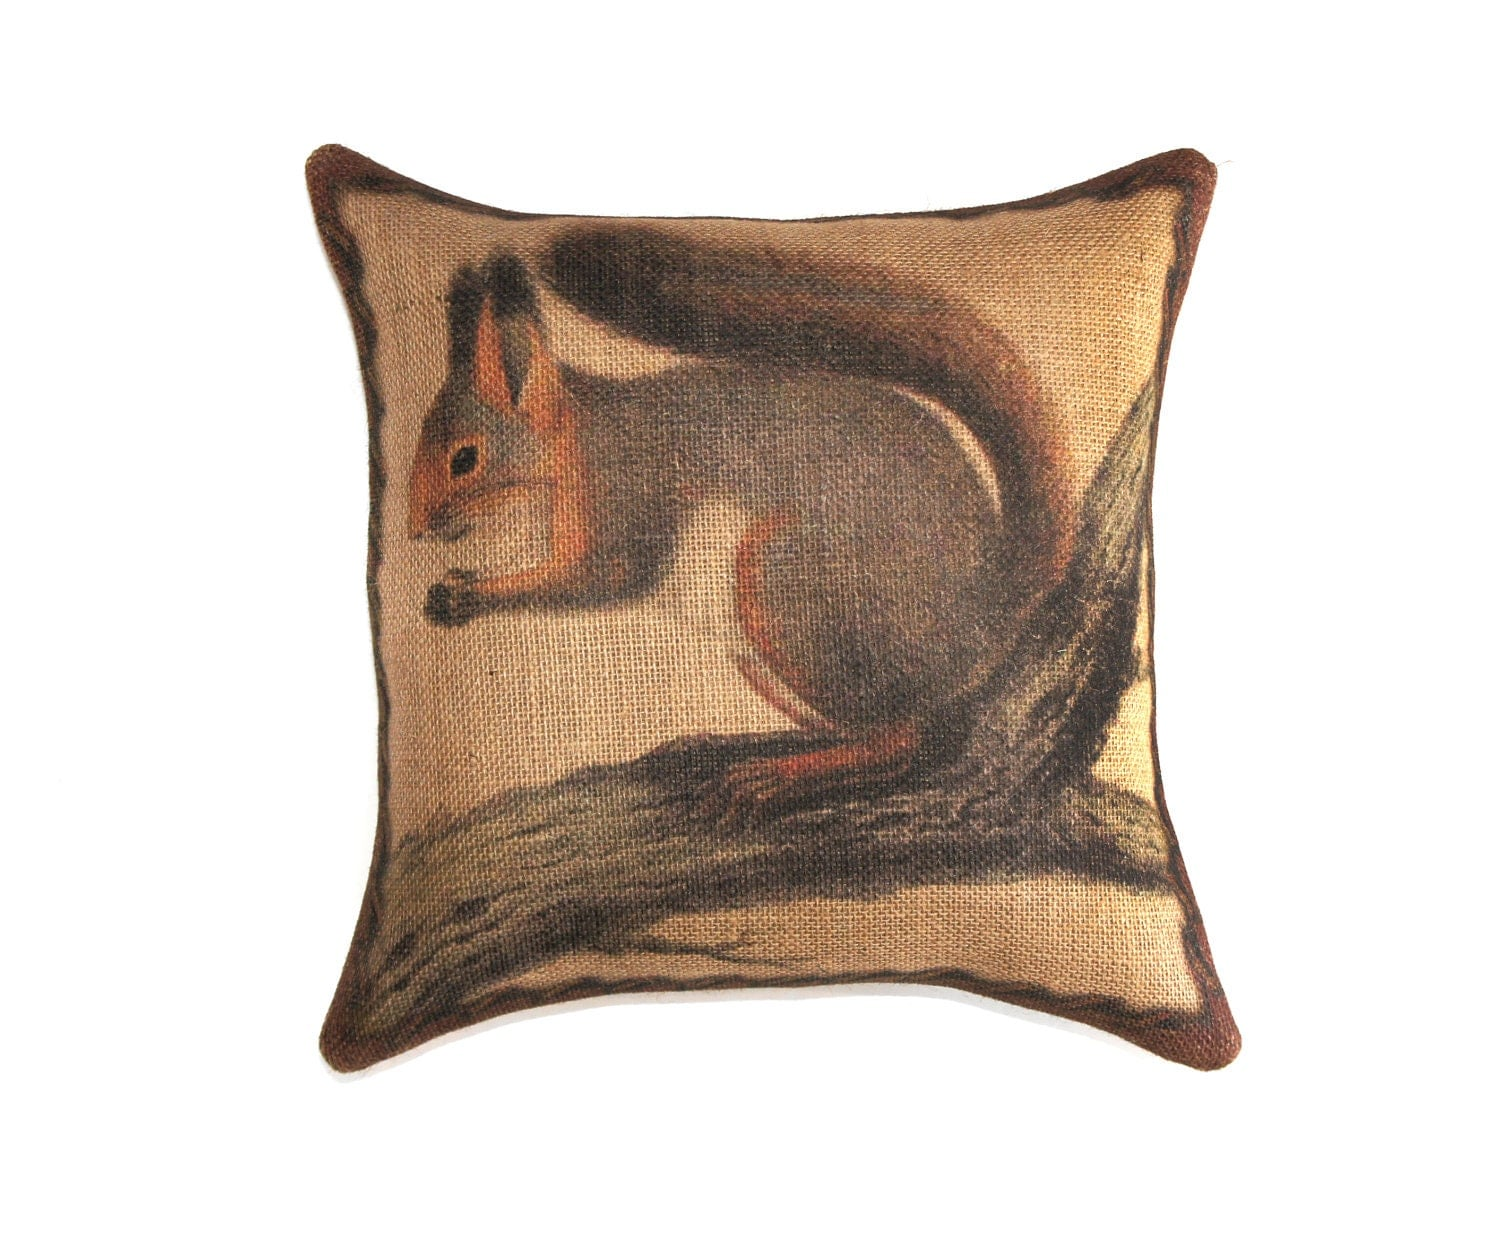 How To Make A Burlap Throw Pillow : Squirrel Pillow, Burlap Throw Pillow, Decorative, Rustic